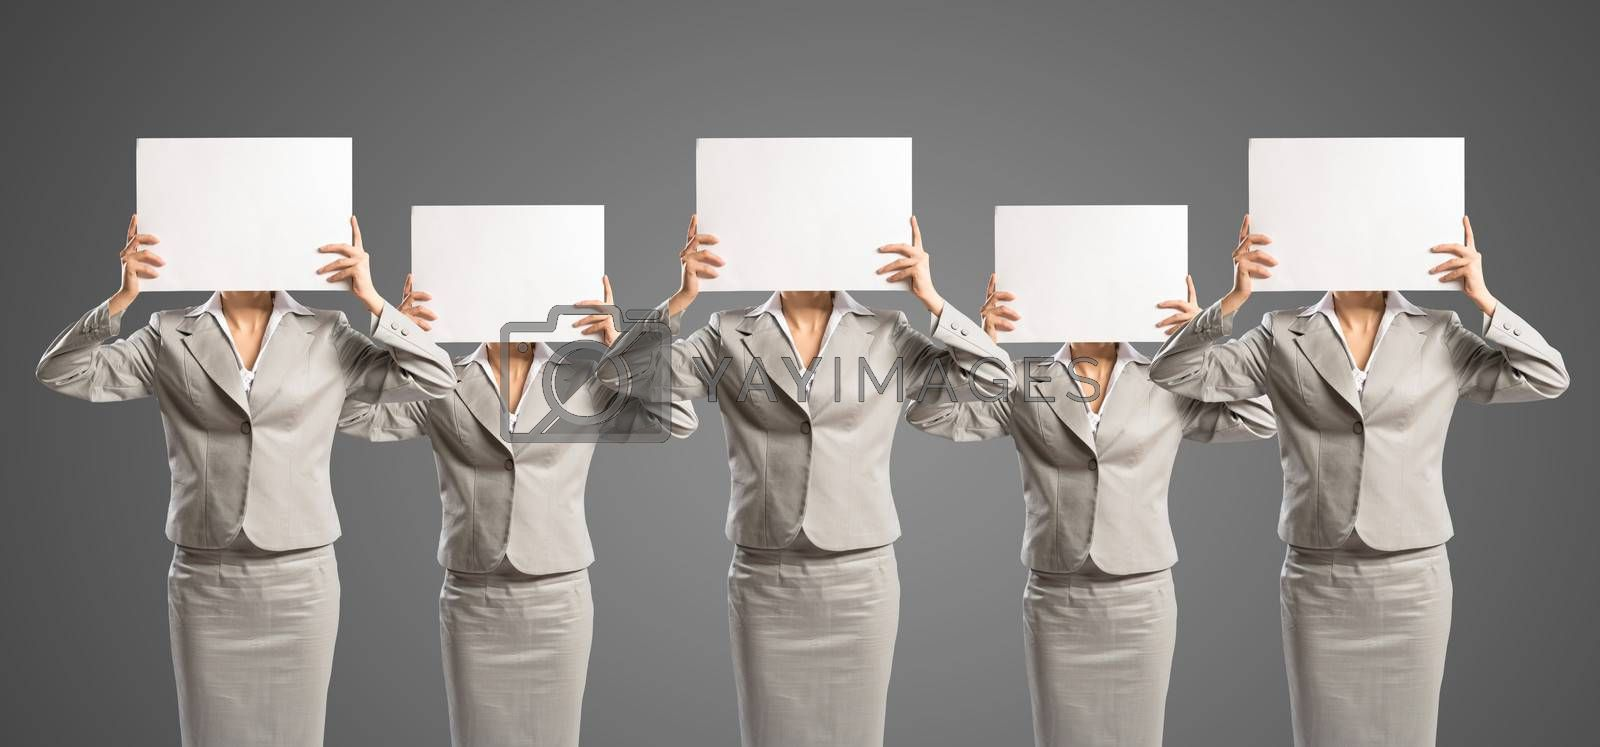 image of a businesswomen standing in a row by adam121